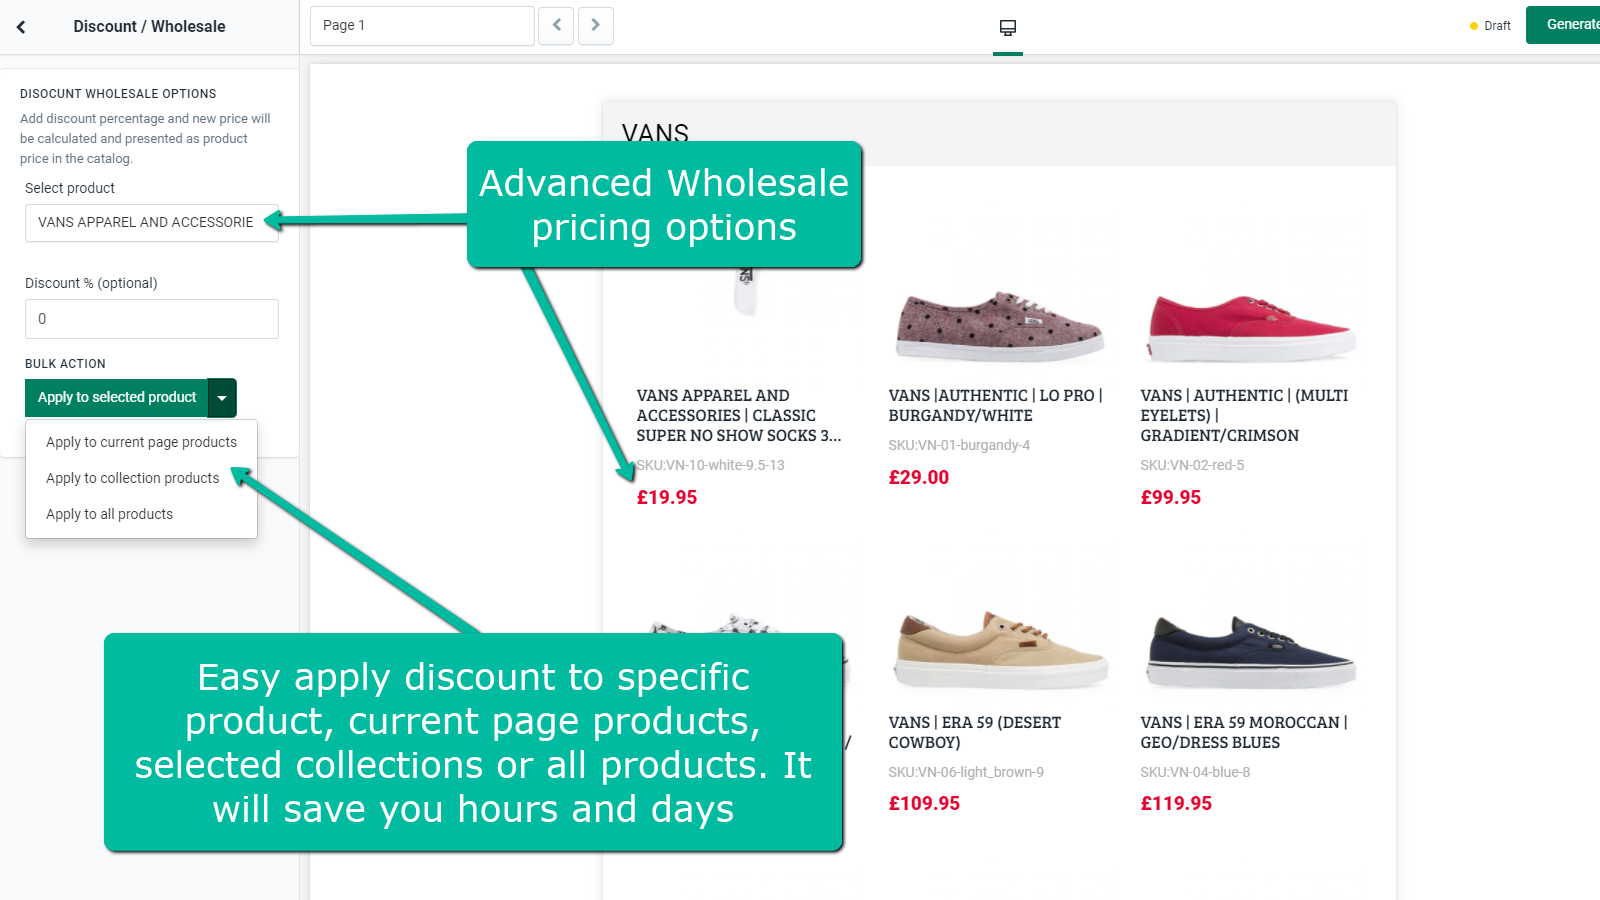 Wholesale Discount Pricing Options and Bulk Actions